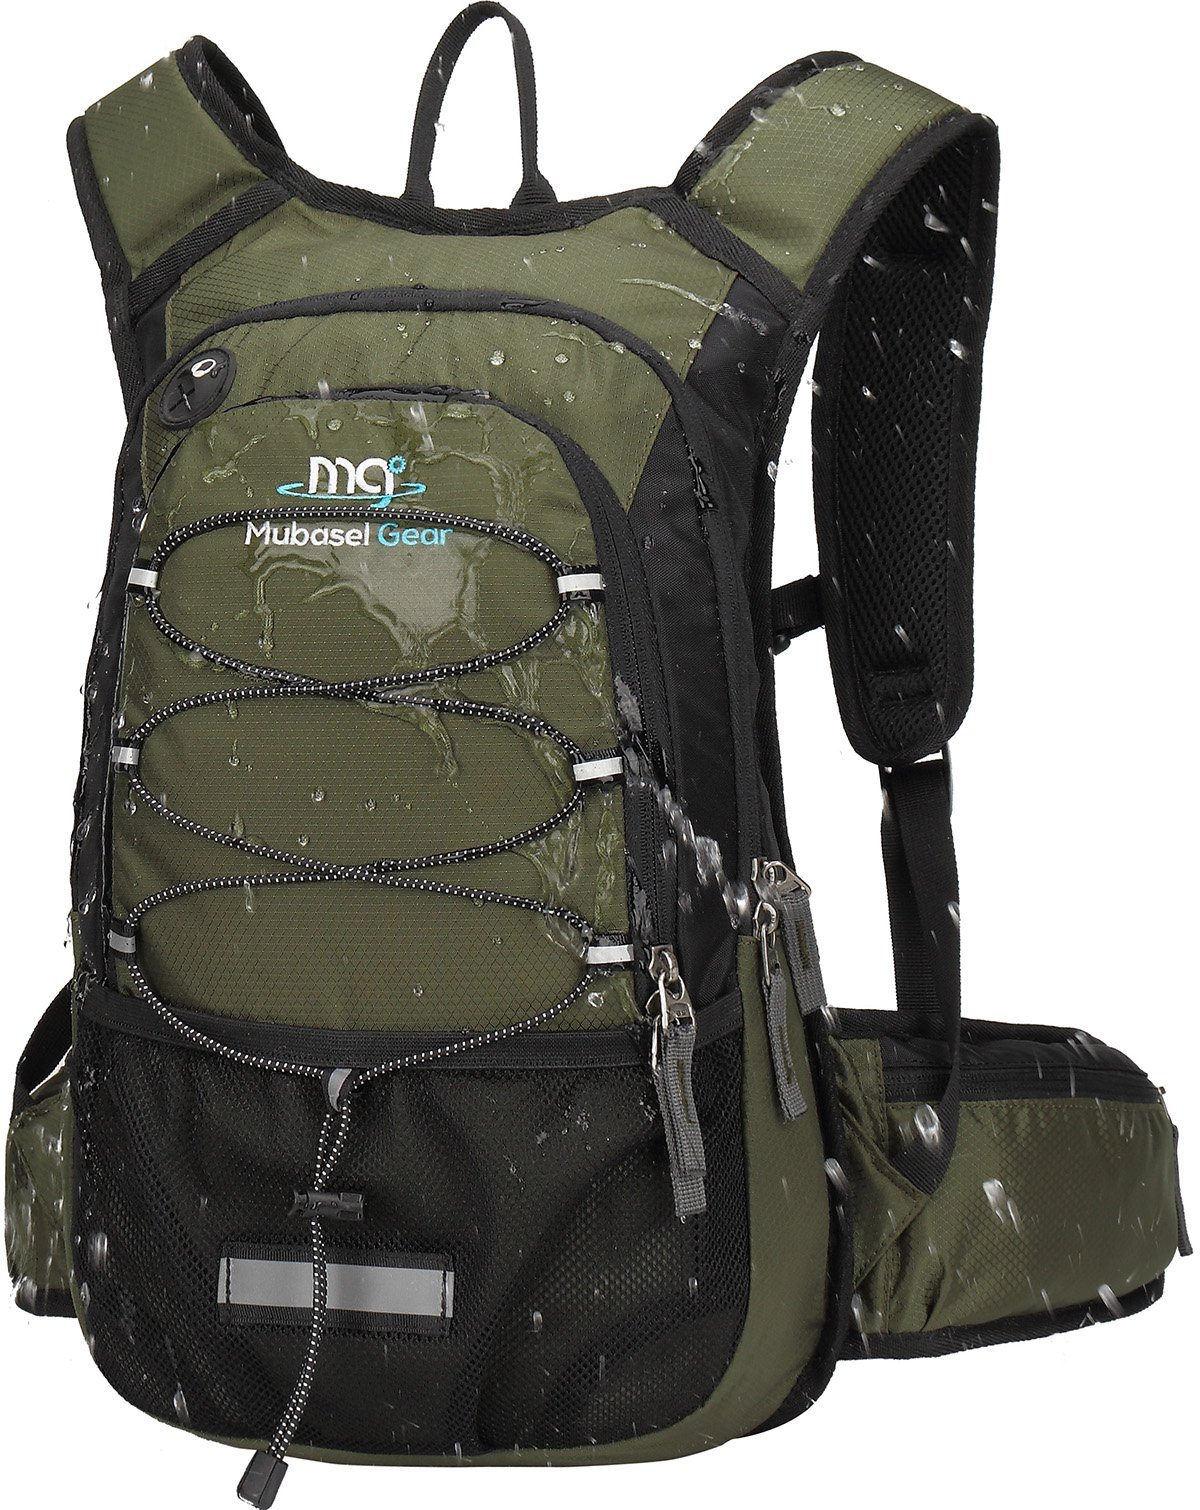 Mubasel Gear Insulated Hydration Backpack Pack with 2L BPA Free Bladder - Keeps Liquid Cool up to 4 Hours – for Running, Hiking, Cycling, Camping (Olive)